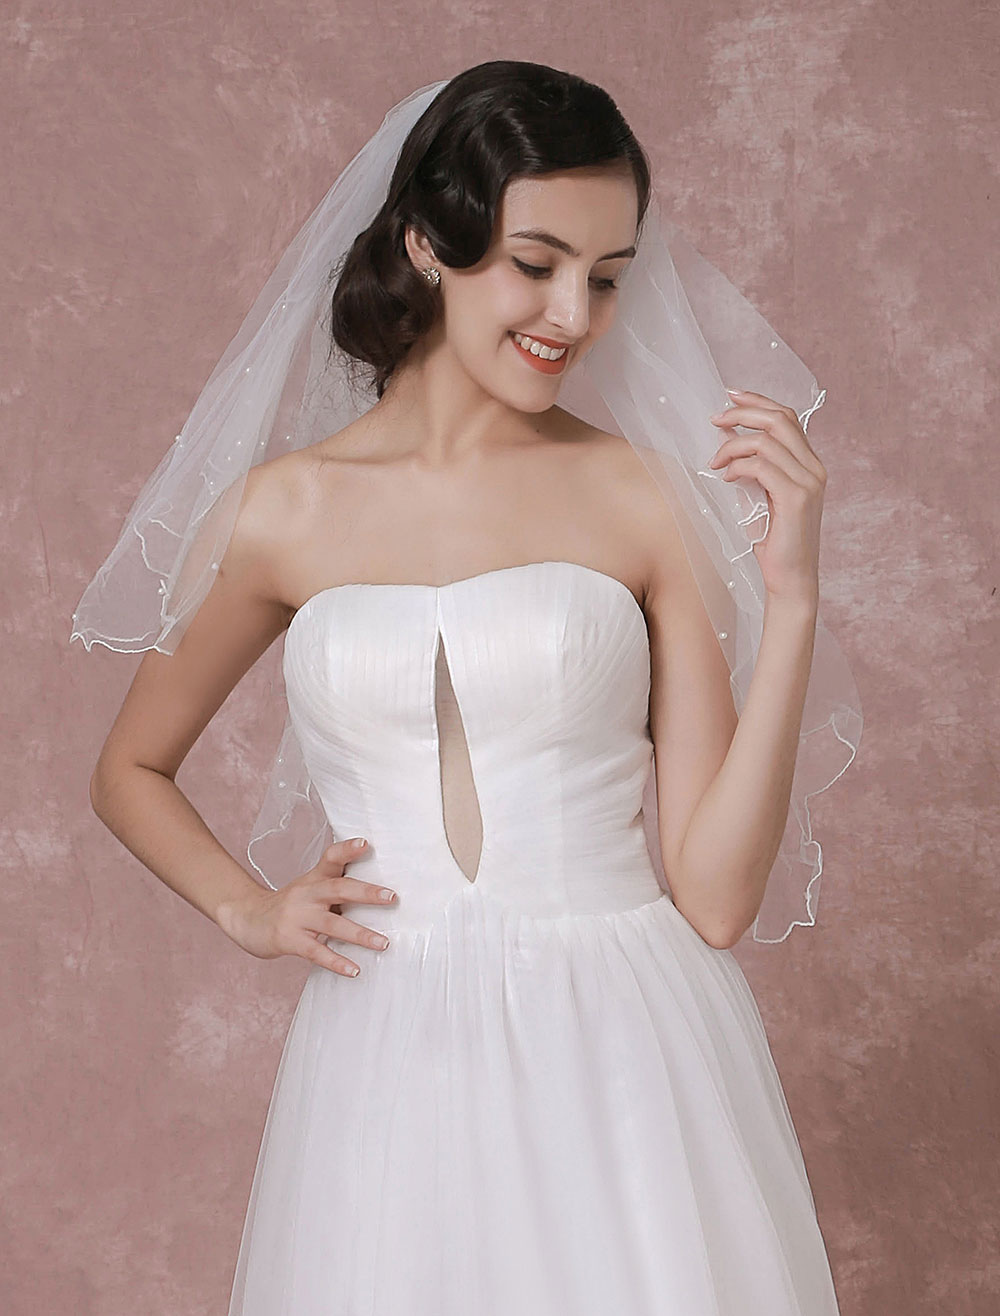 Buy Ivory Wedding Veil Tulle Two-Tier Pearl Trim Edge Bridal Veil for $13.29 in Milanoo store